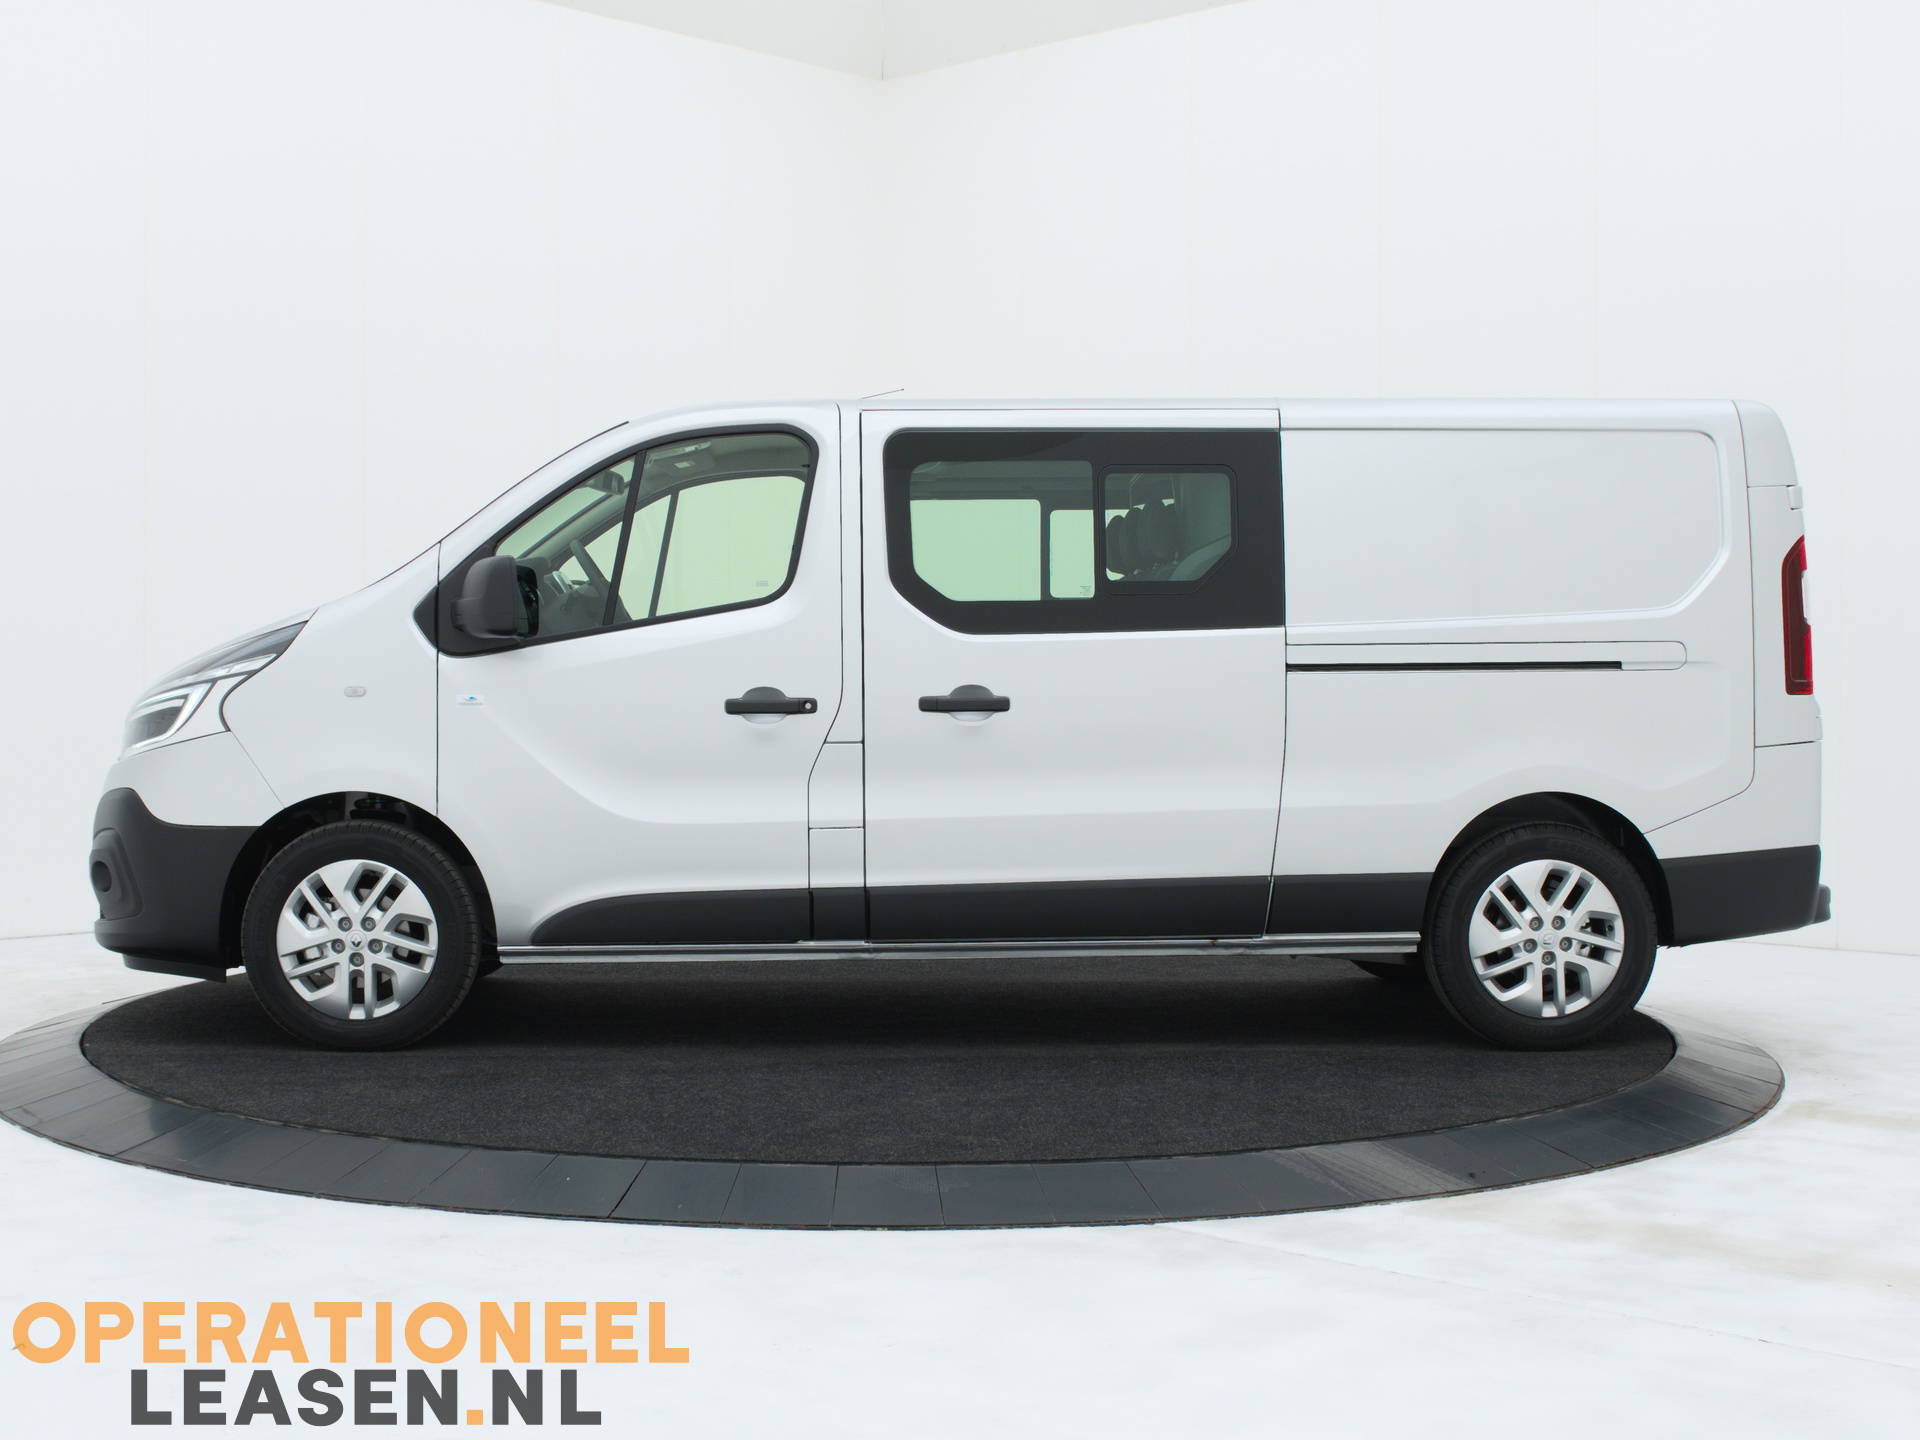 Operational lease Renault master traffic-12